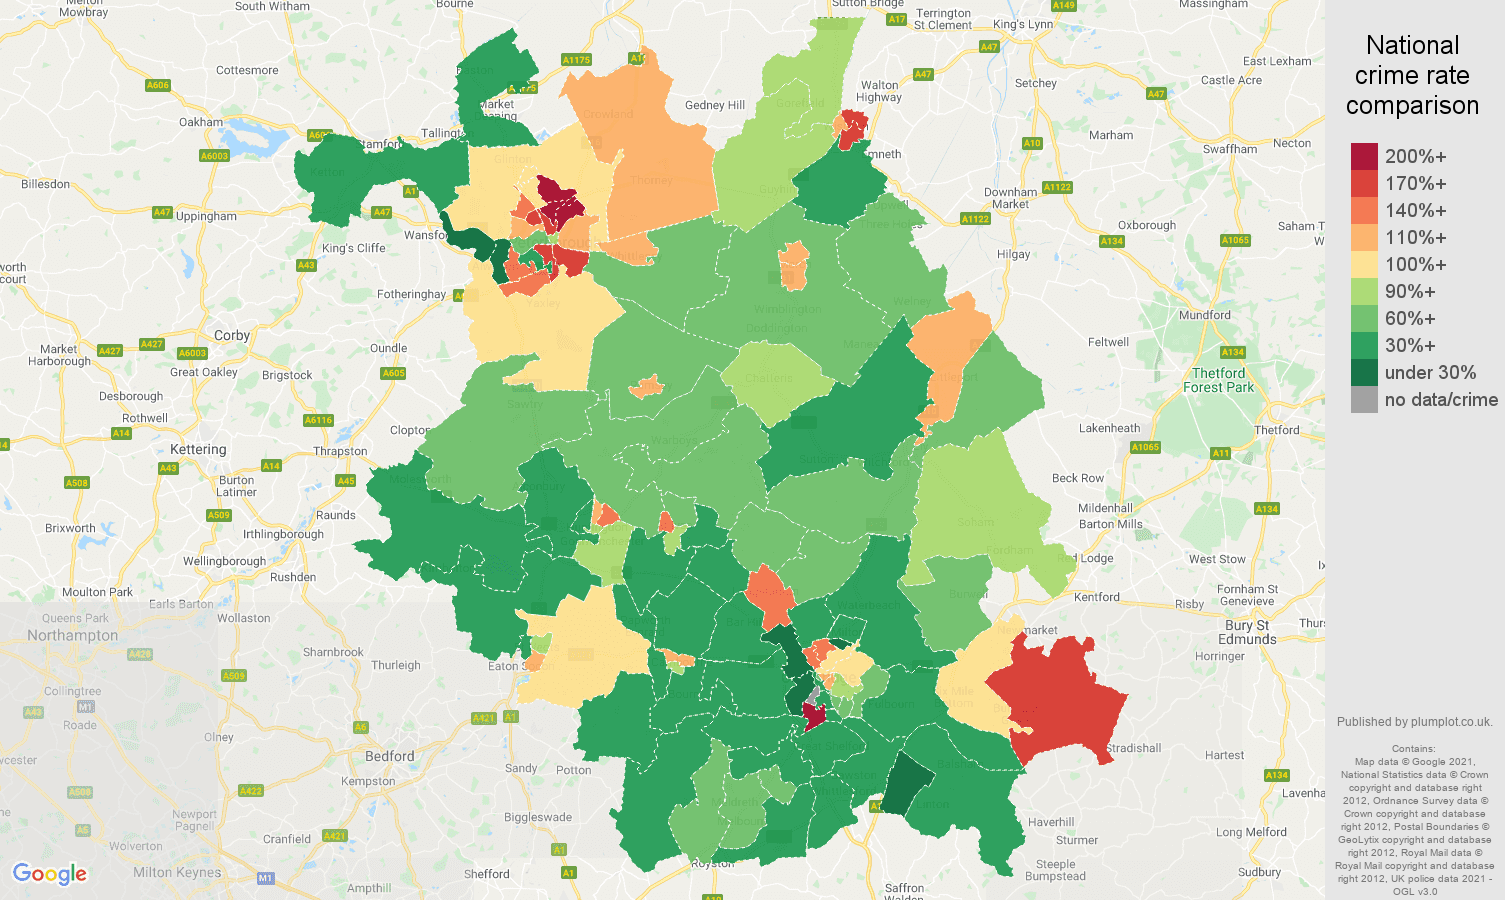 Cambridgeshire violent crime rate comparison map